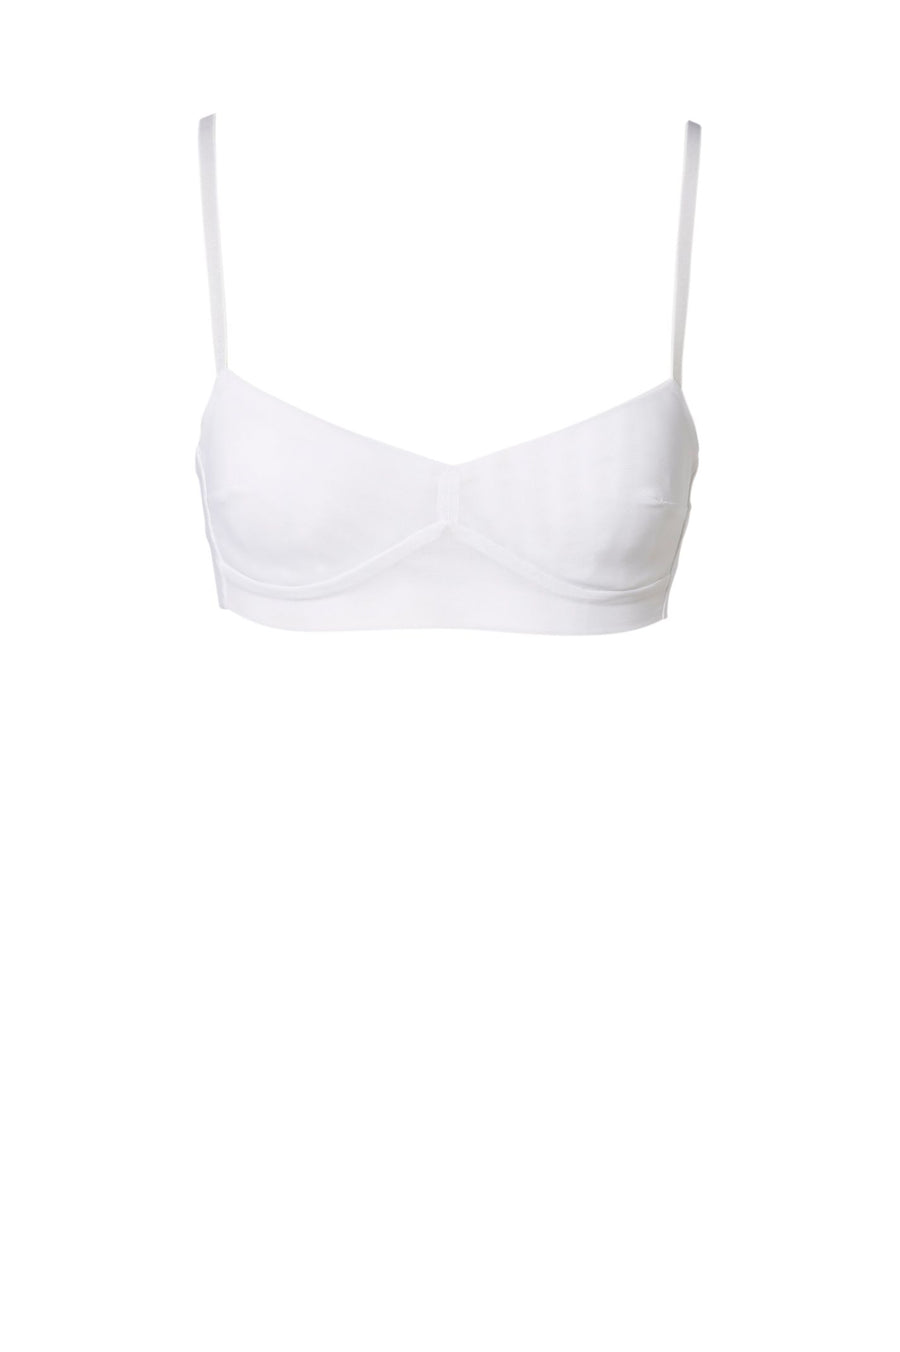 MESH BRA, SHOESTRING STRAPS WITH WIDE BAND, COLOR WHITE